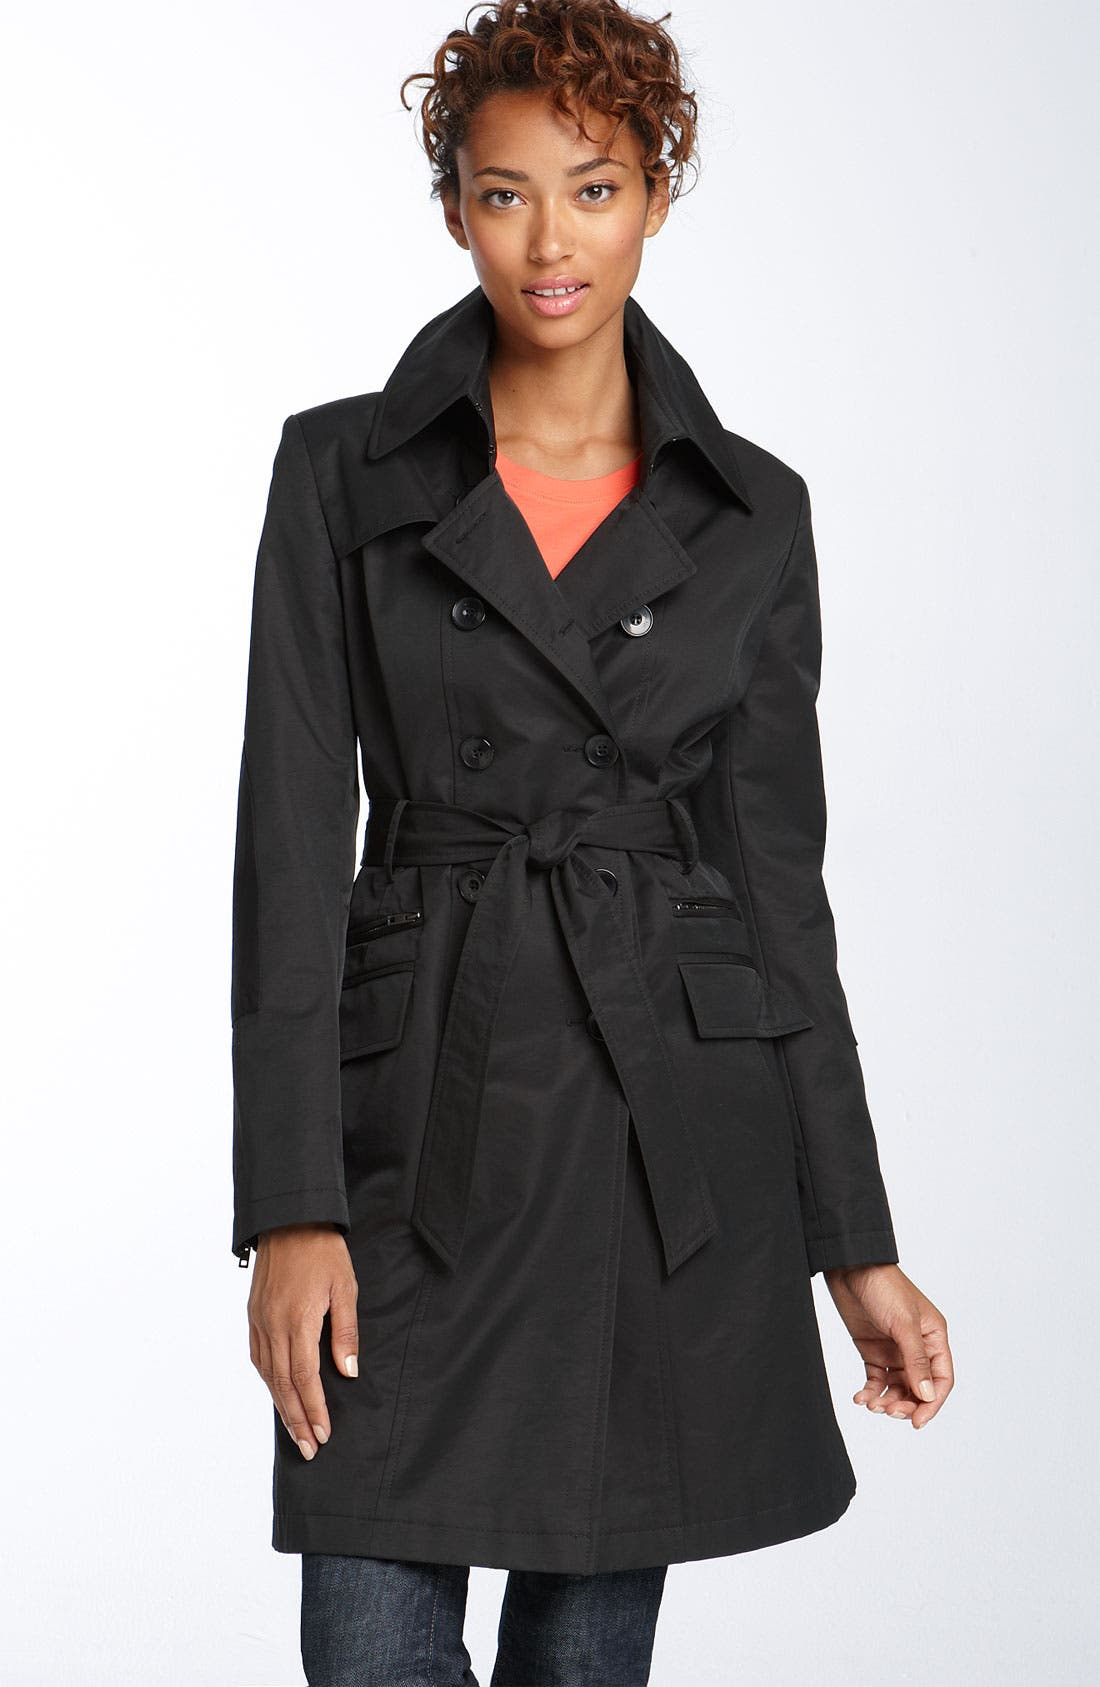 Alternate Image 1 Selected - DKNY 'Audrey' Double Breasted Trench